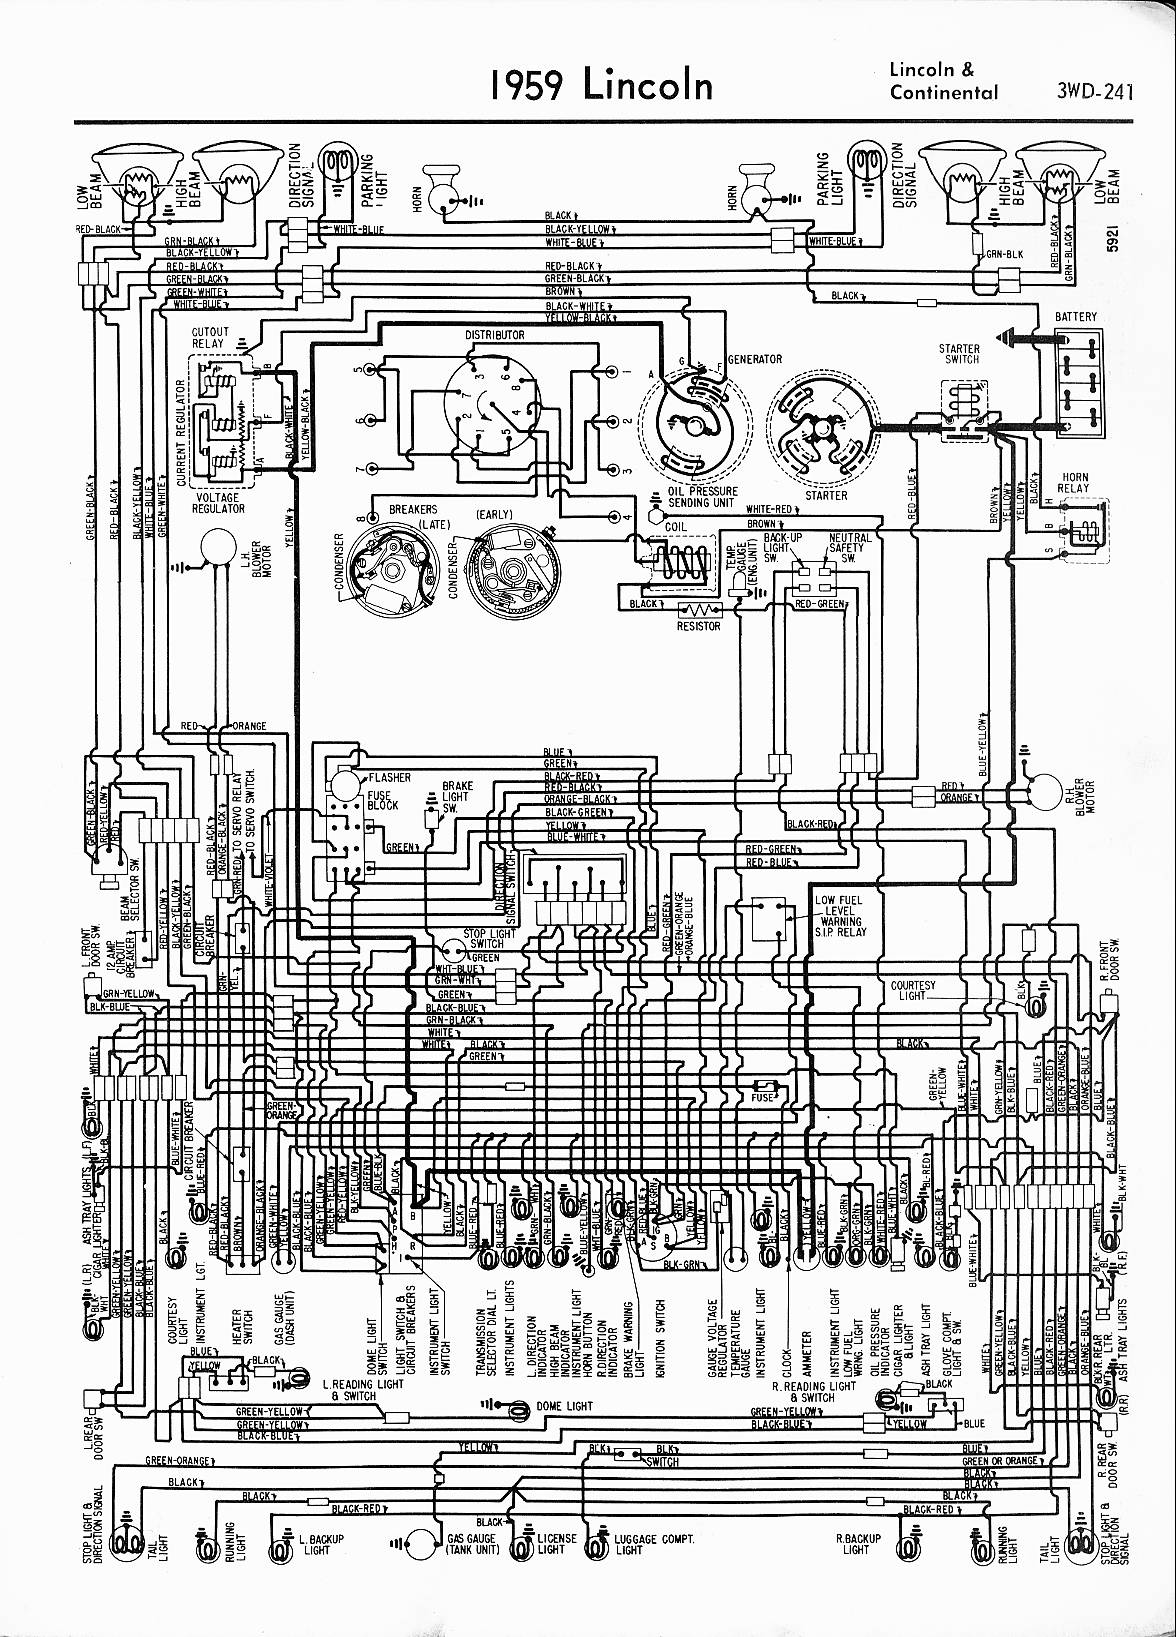 98 Lincoln Continental Wiring Diagram - Schematics Online on